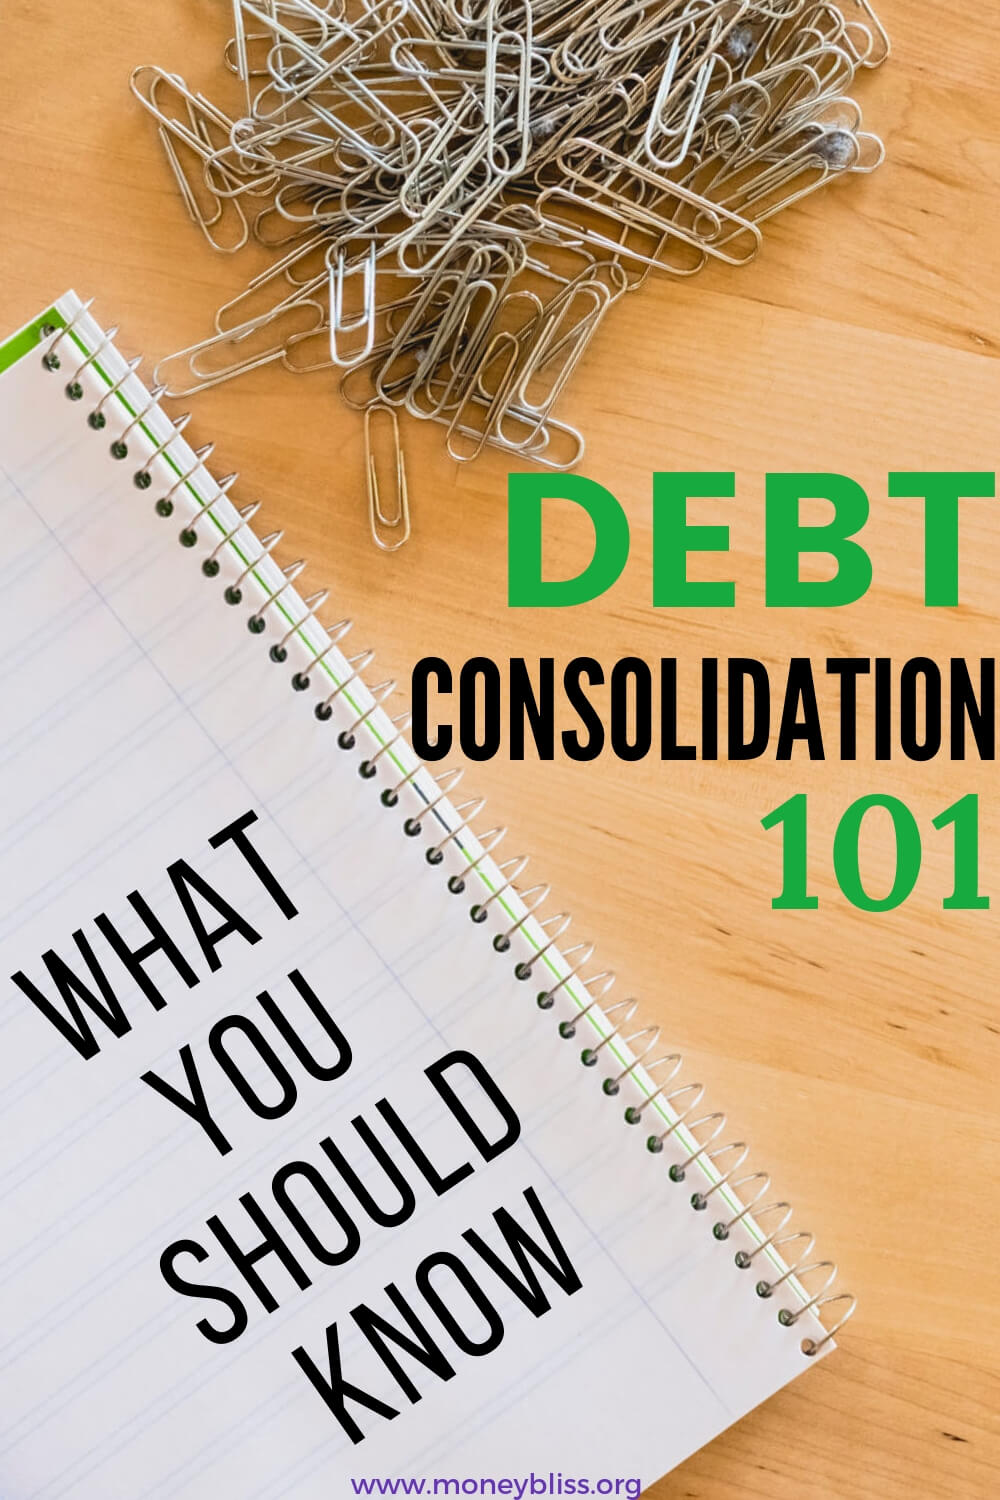 Learn if consolidating debt with a loan is right for you. Tips to find reputable lenders and companies. Use debt consolidation to get out of debt and change your personal finance situation. #getoutofdebt #moneybliss